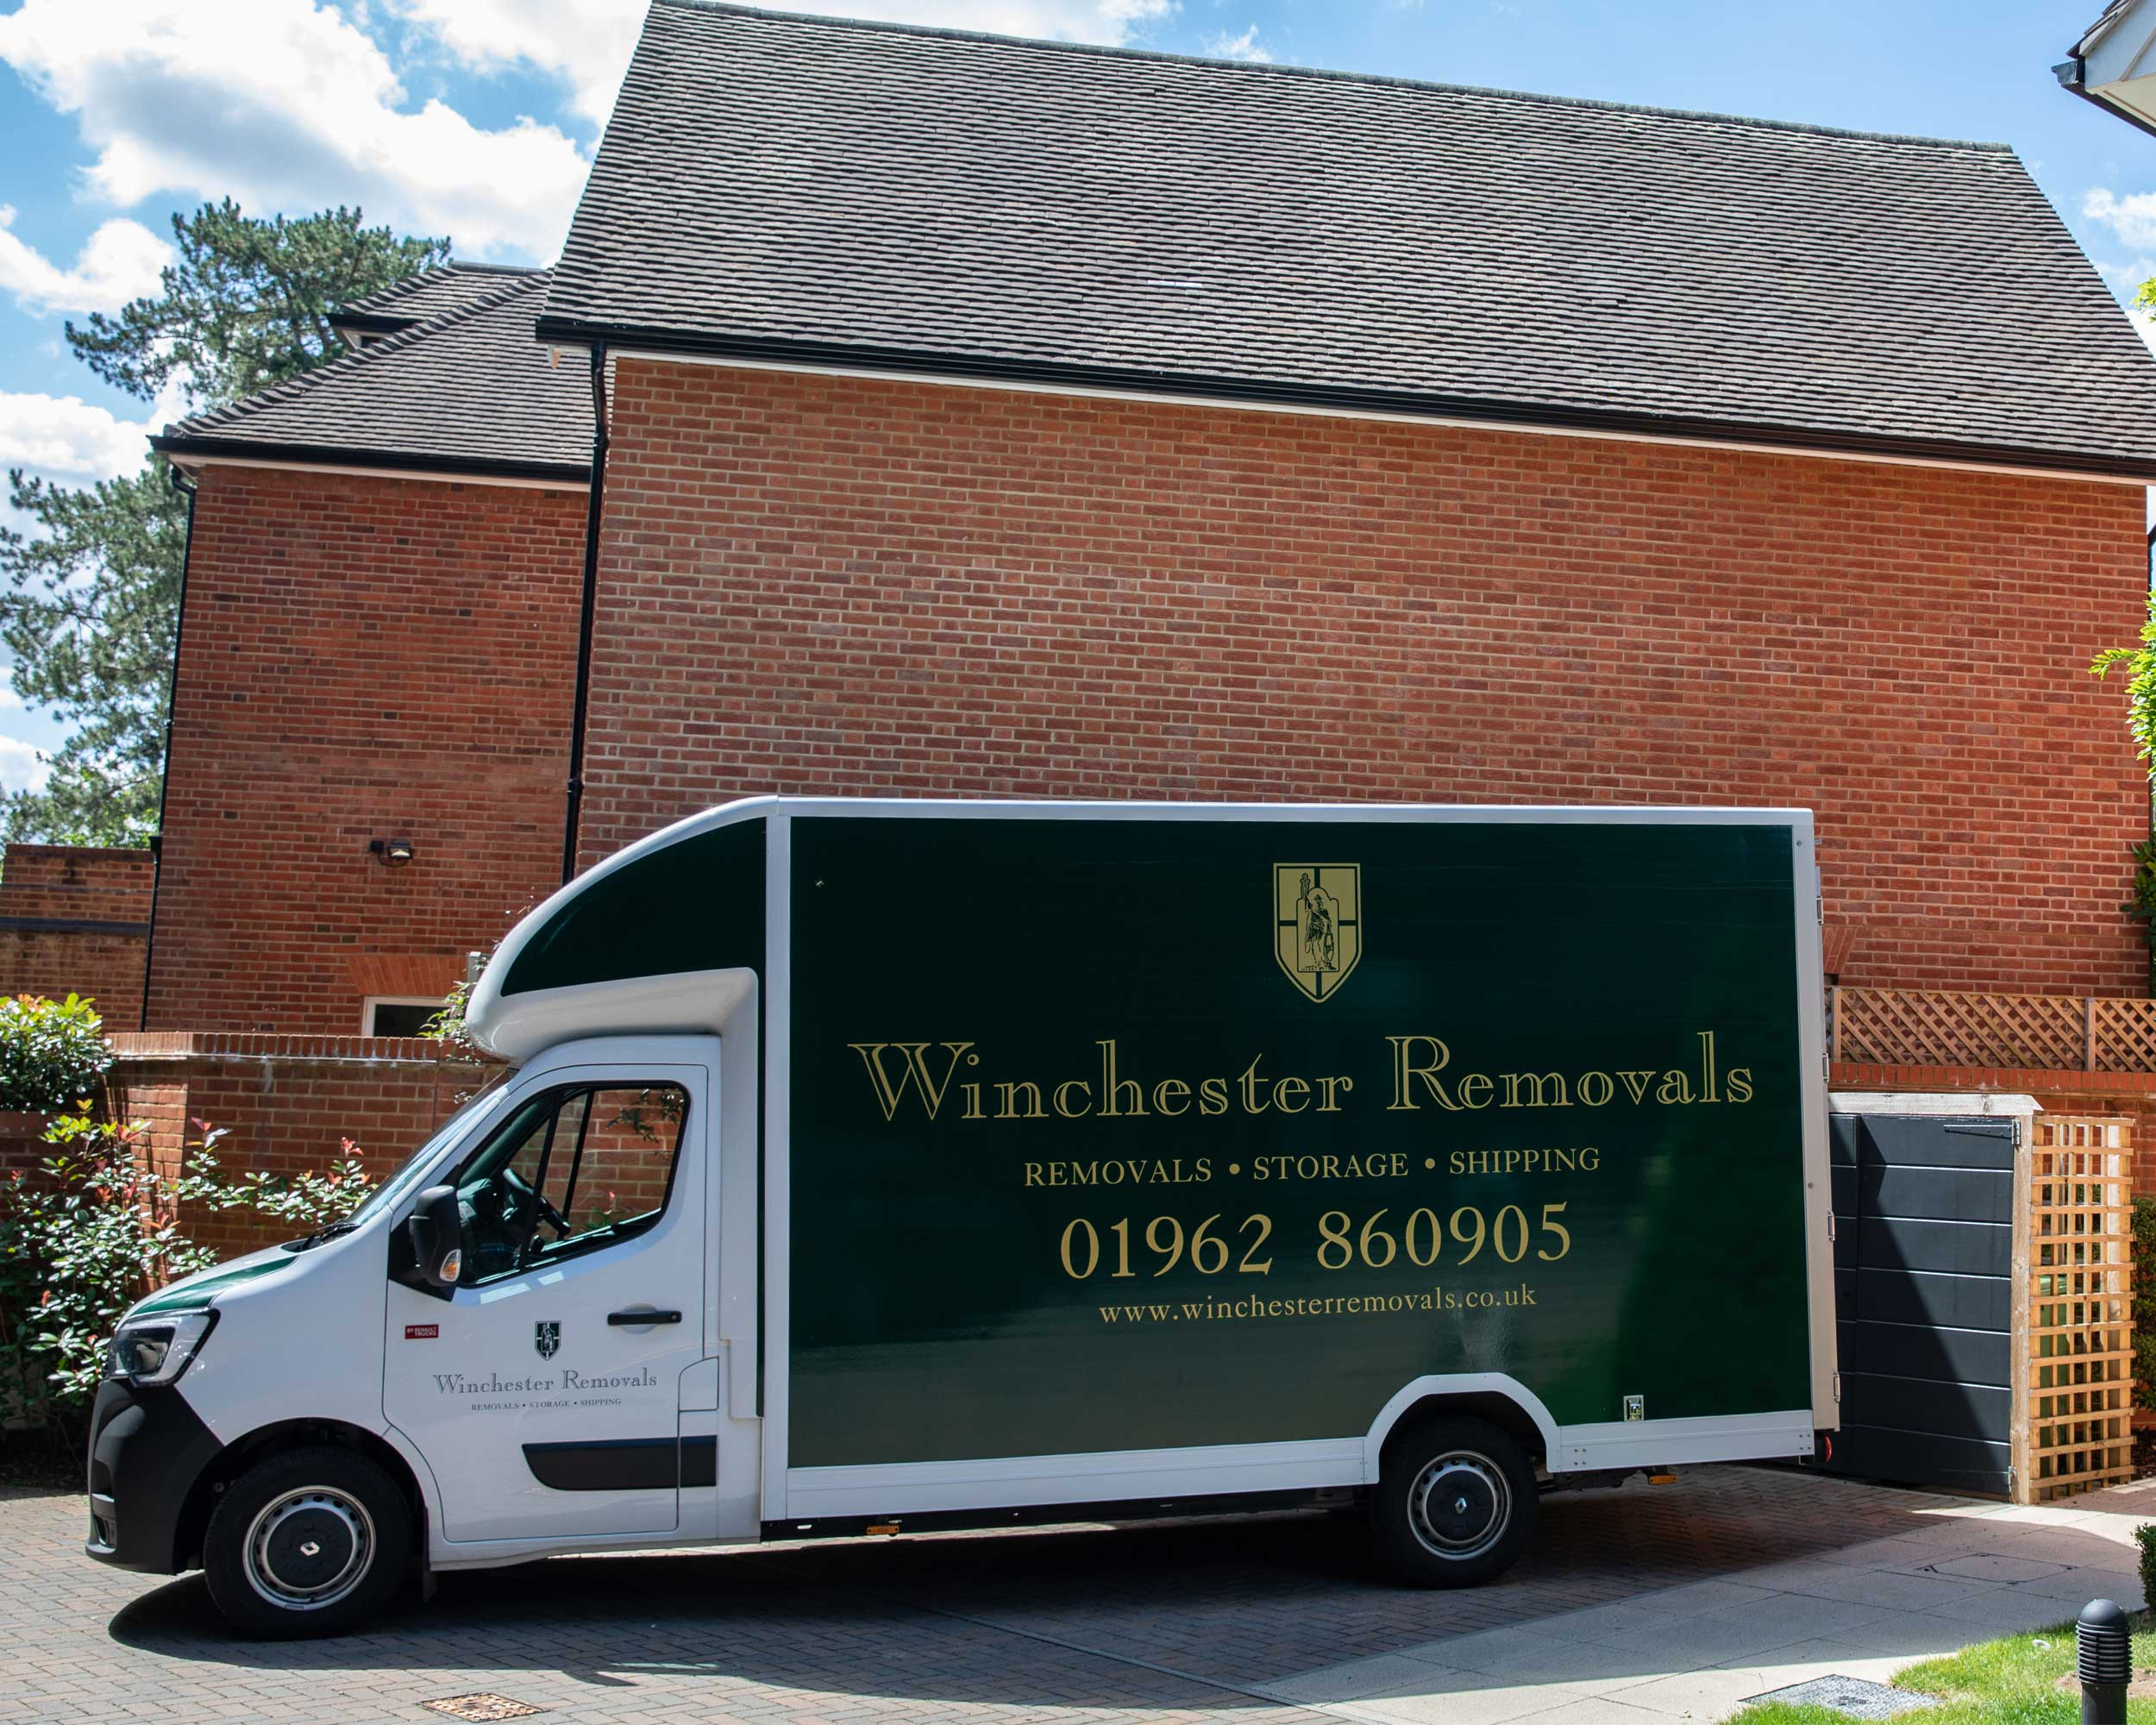 Winchester Removals puts its new vehicle to work!